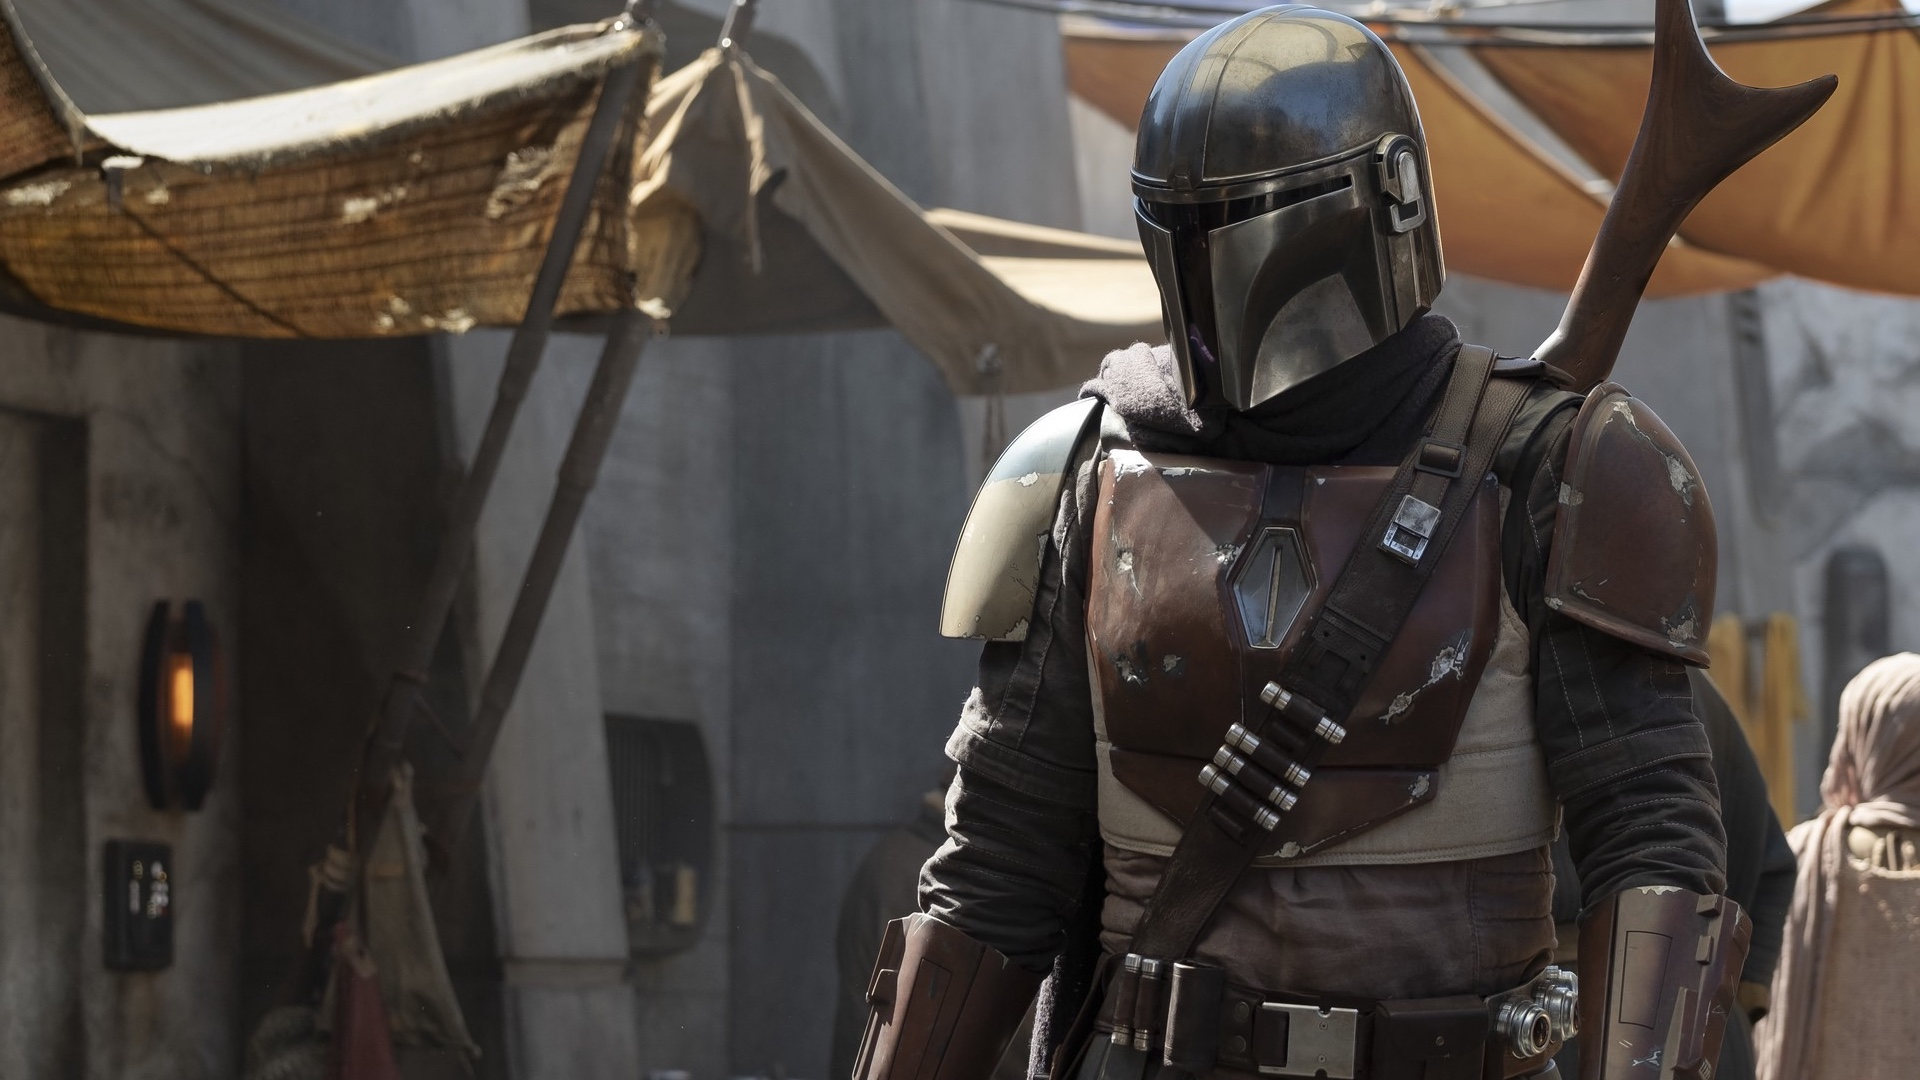 jon-favreau-says-he-wanted-the-mandalorian-to-have-the-same-scale-as-star-wars-a-new-hope-social.jpg